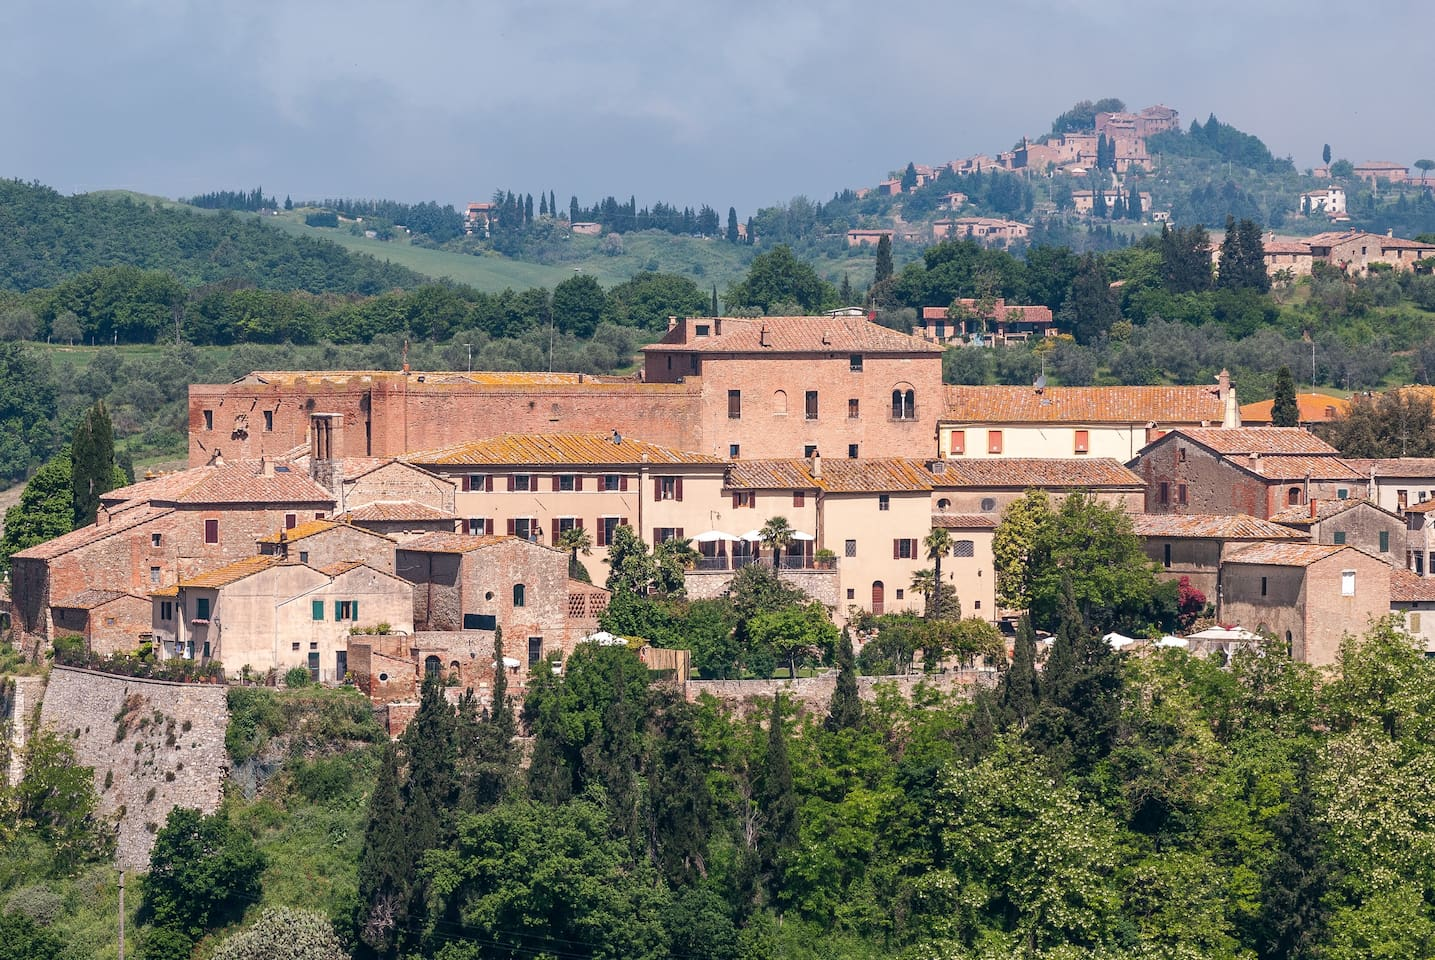 The house and the garden as they appear from the road to Montisi